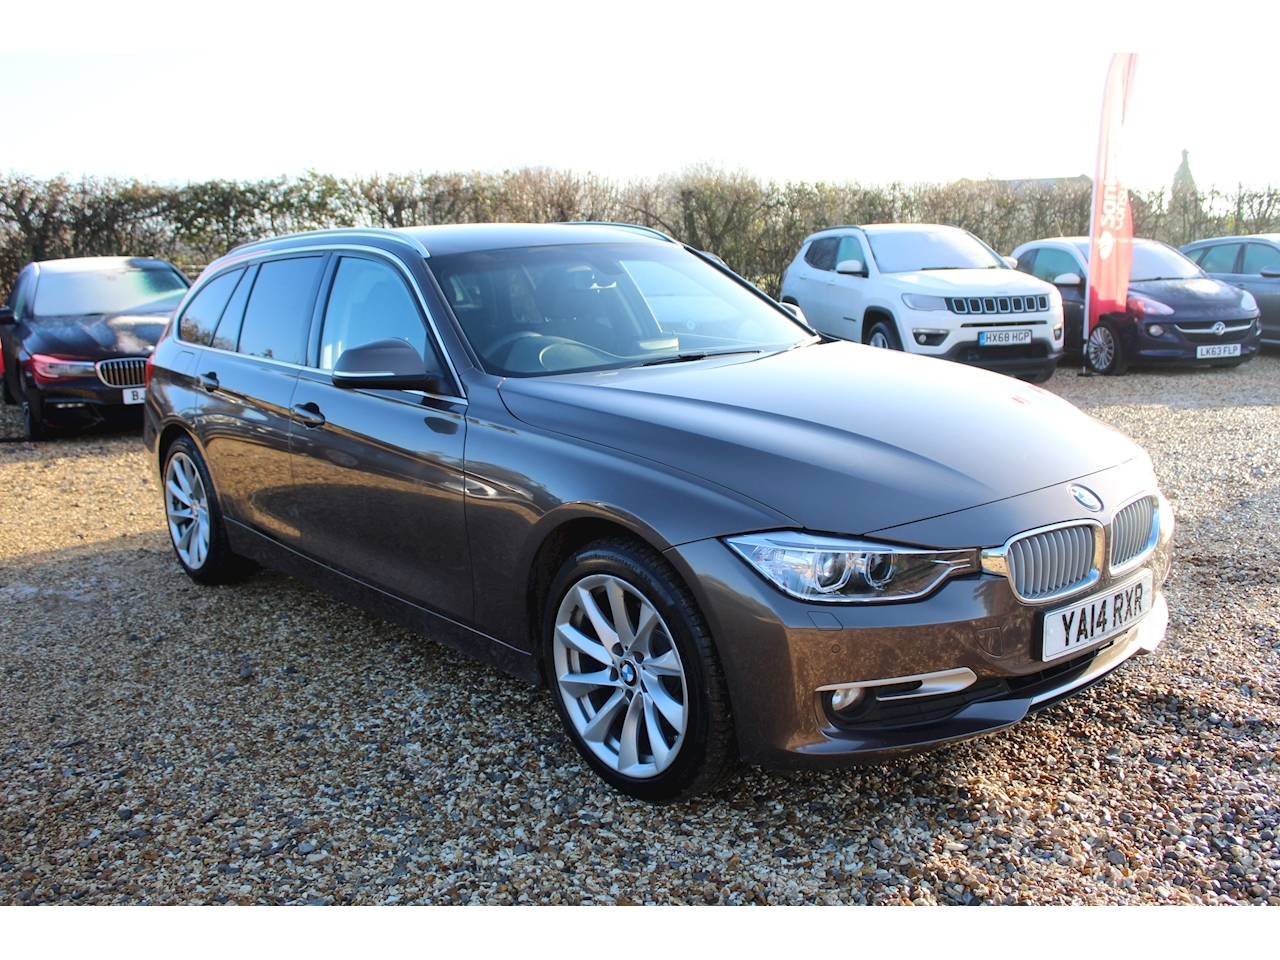 BMW 3 Series 320D Xdrive Modern Touring Estate 2.0 Automatic Diesel